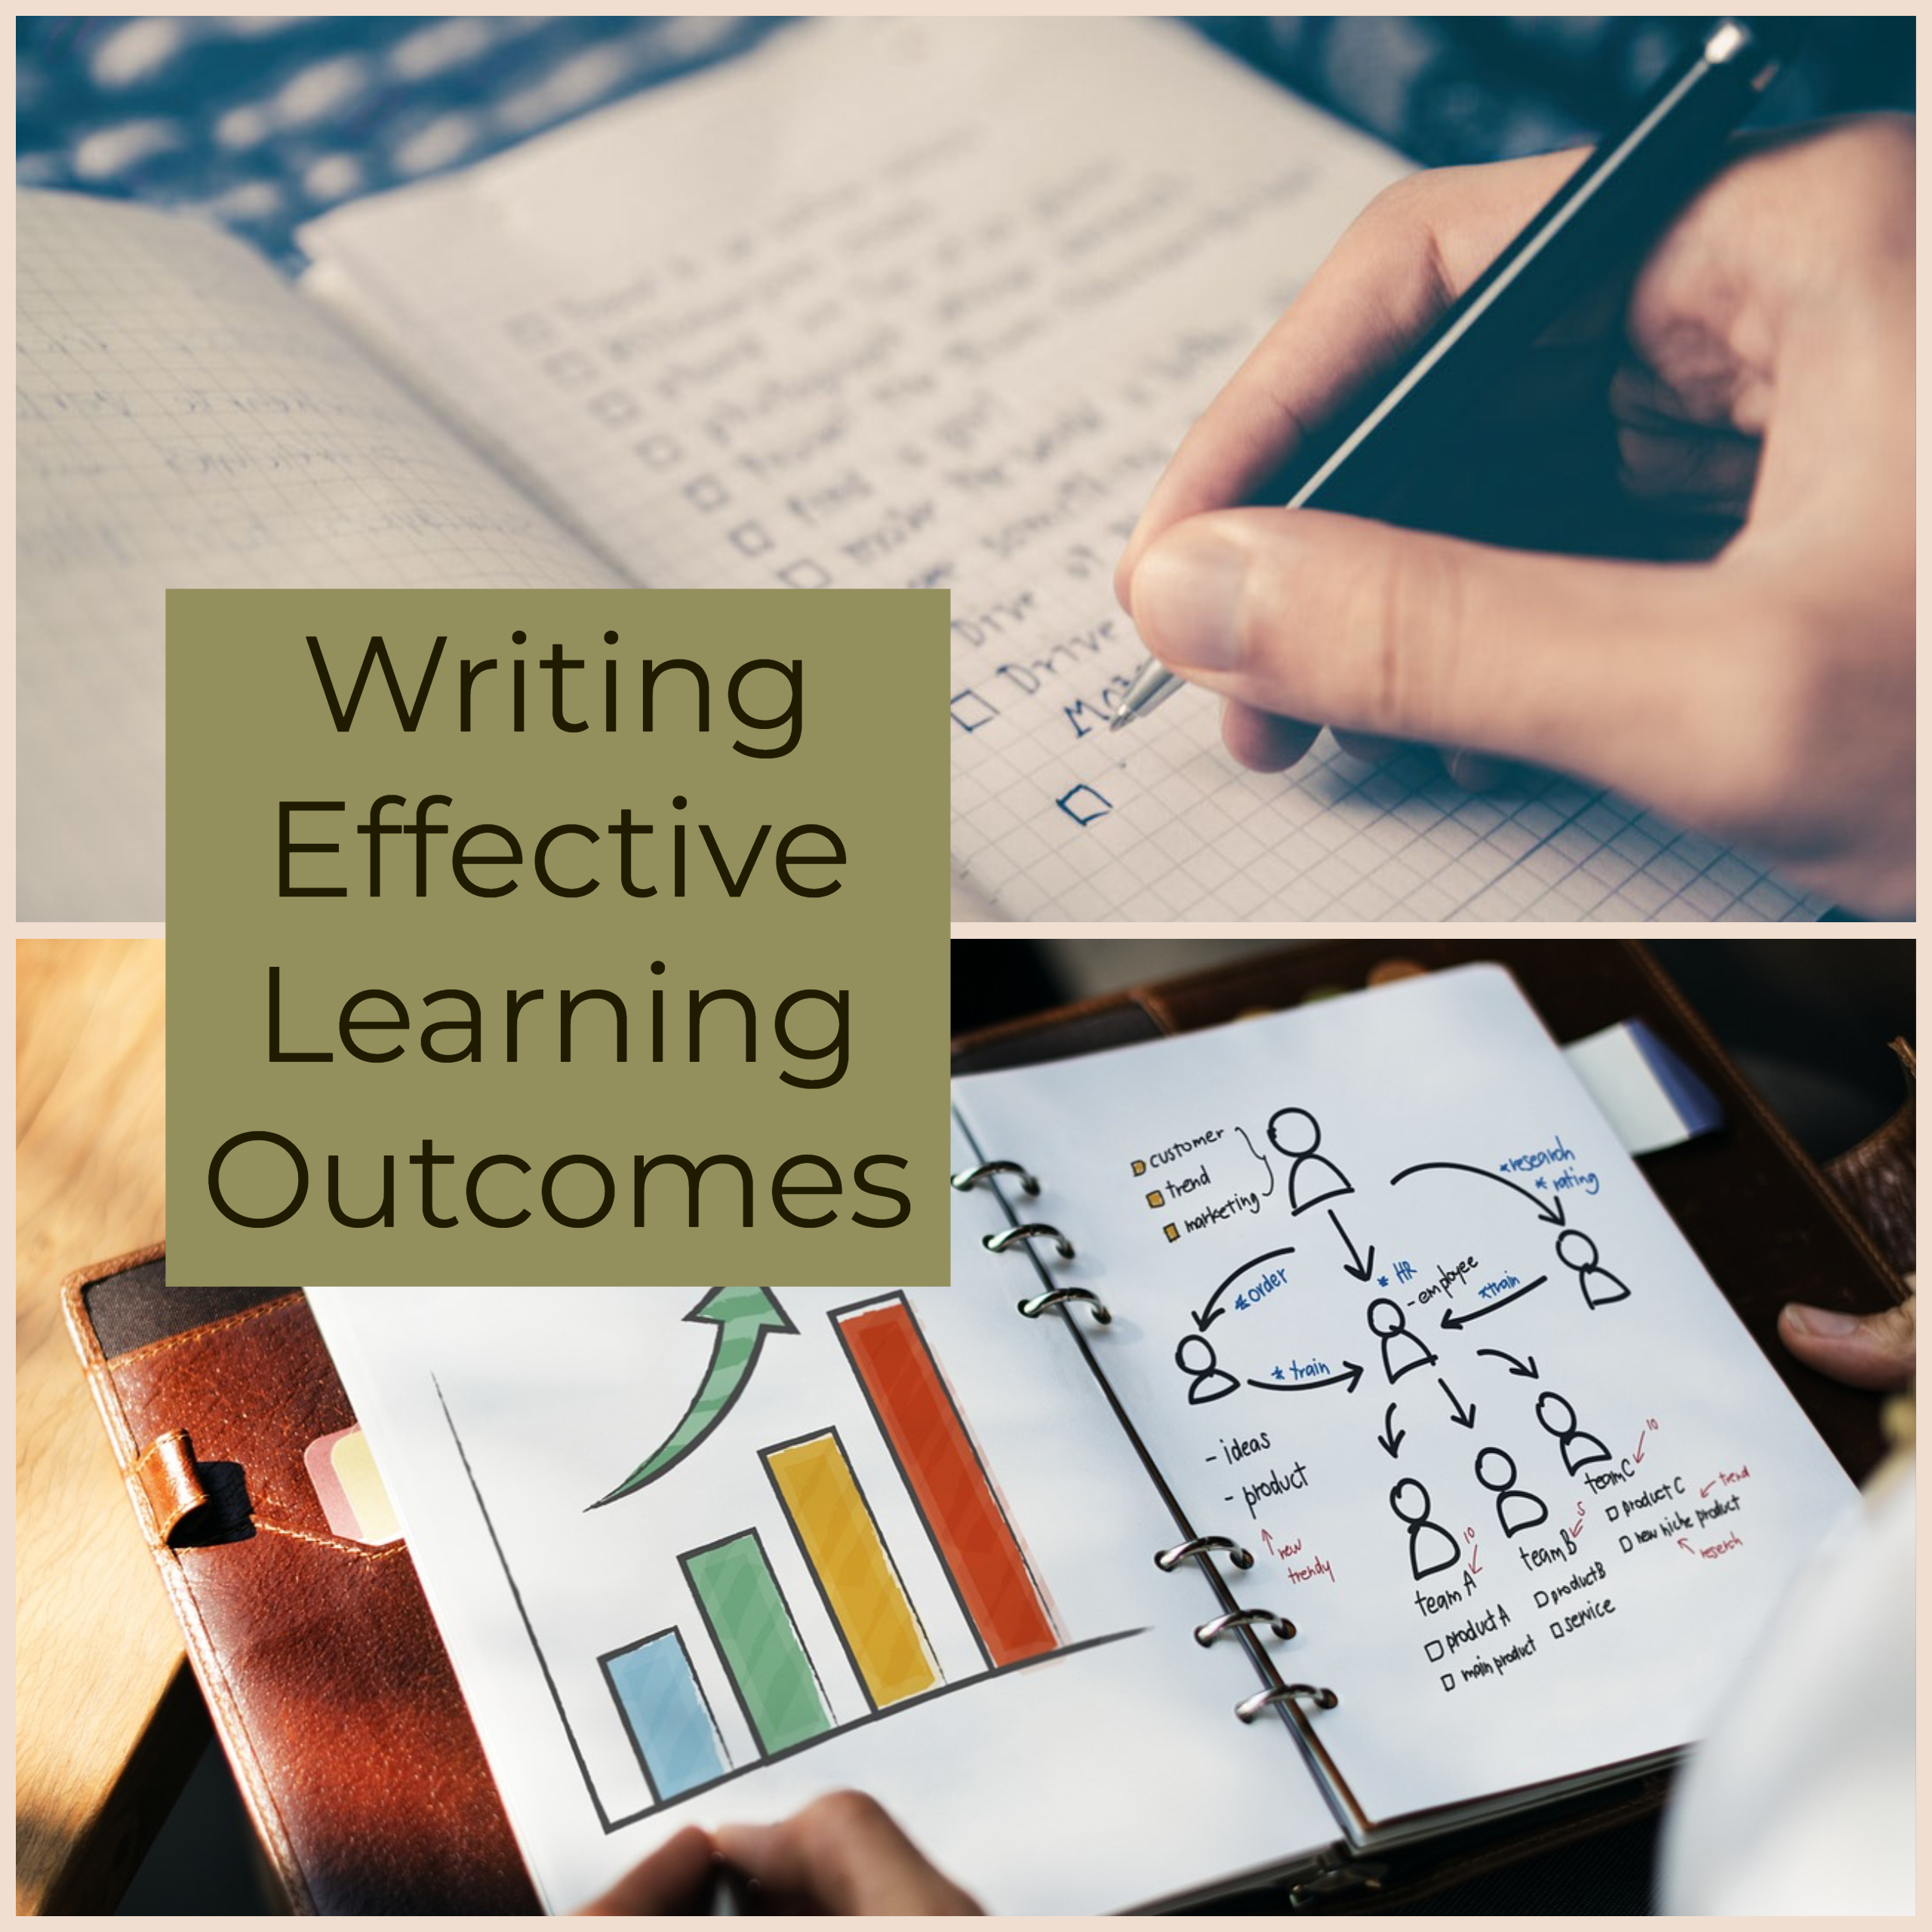 Image of notebook and handwriting with words Writing Effective Learning Outcomes